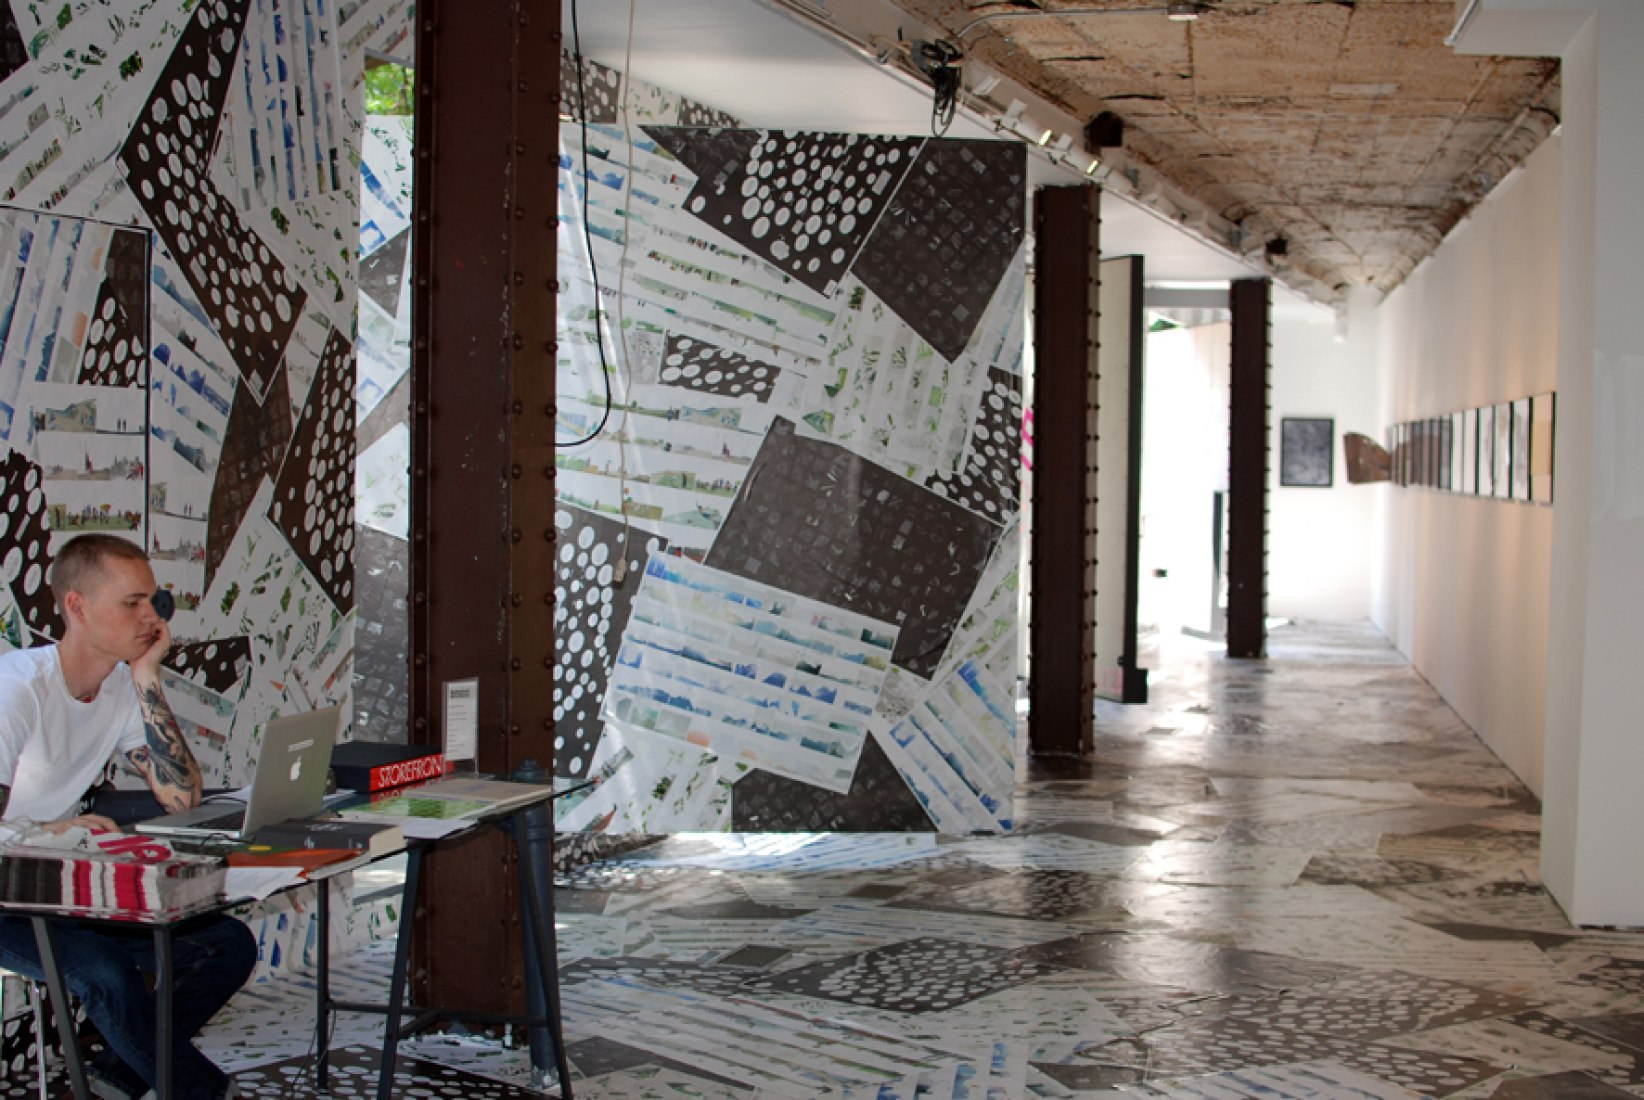 Storefront of Art and Architecture, July 2012. Courtesy of Ainhoa Martín.